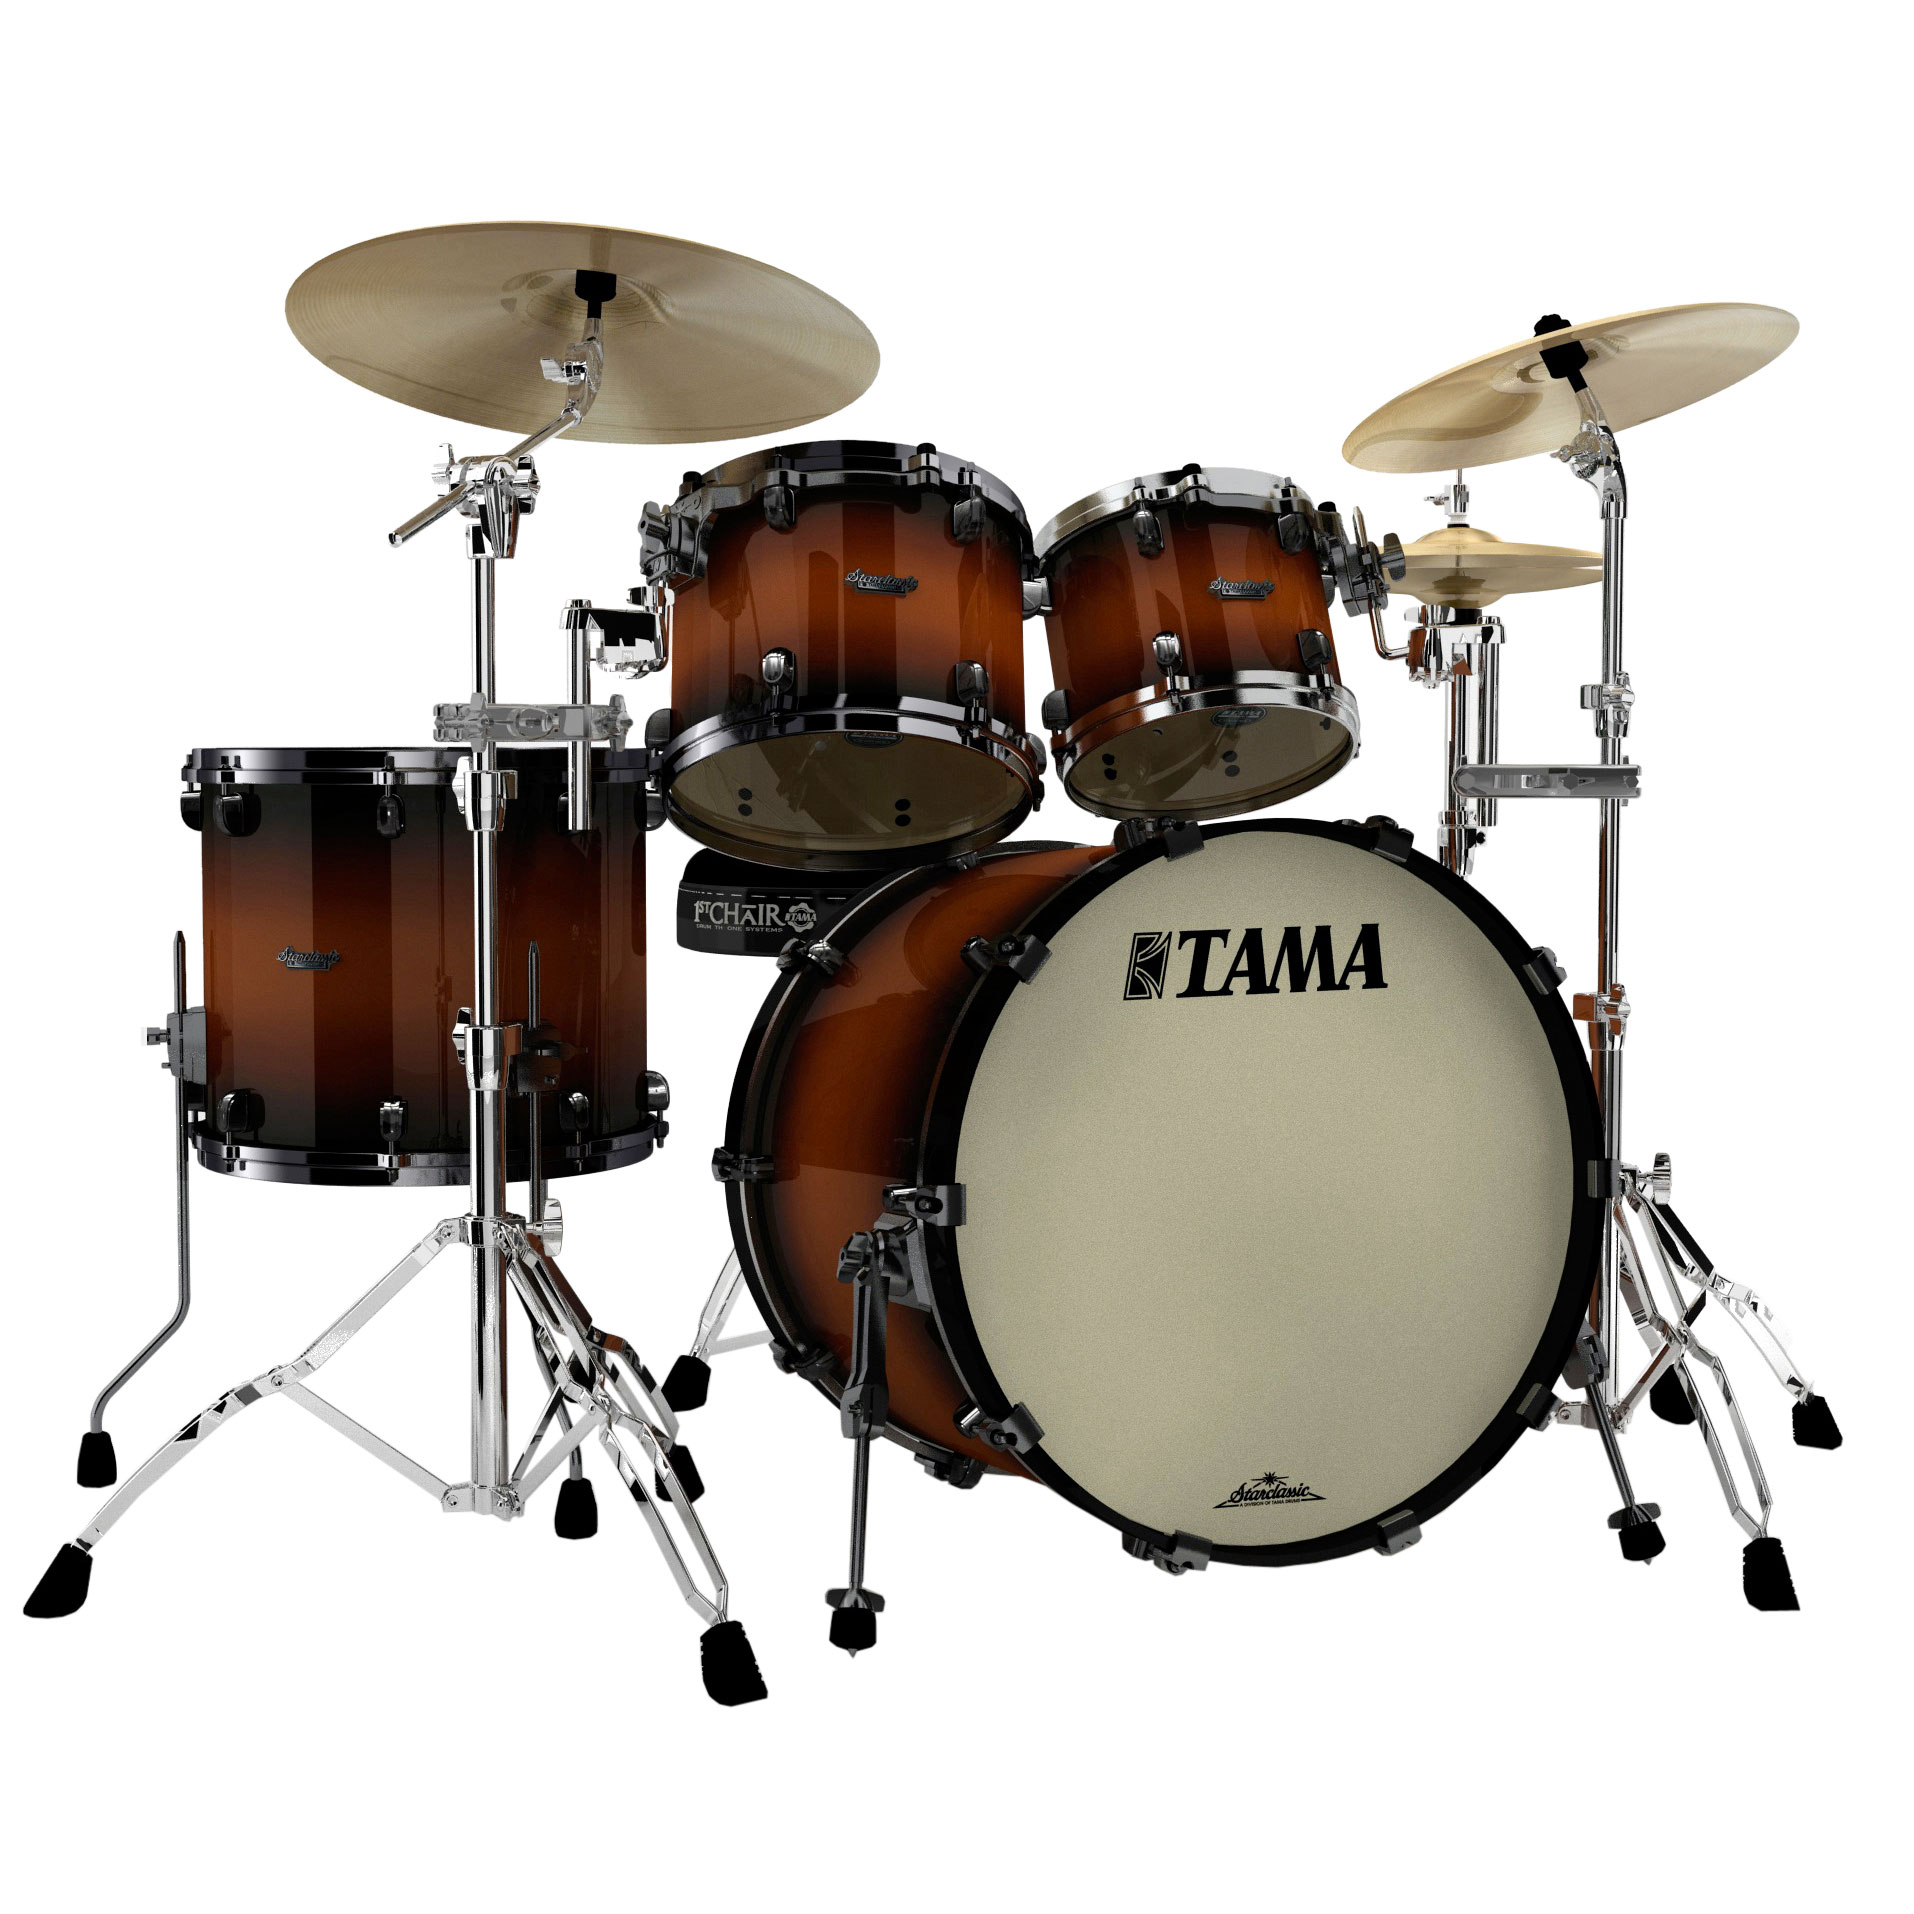 tama starclassic maple 4 piece drum set shell pack 22 bass 10 12 16 toms mp42zbns. Black Bedroom Furniture Sets. Home Design Ideas